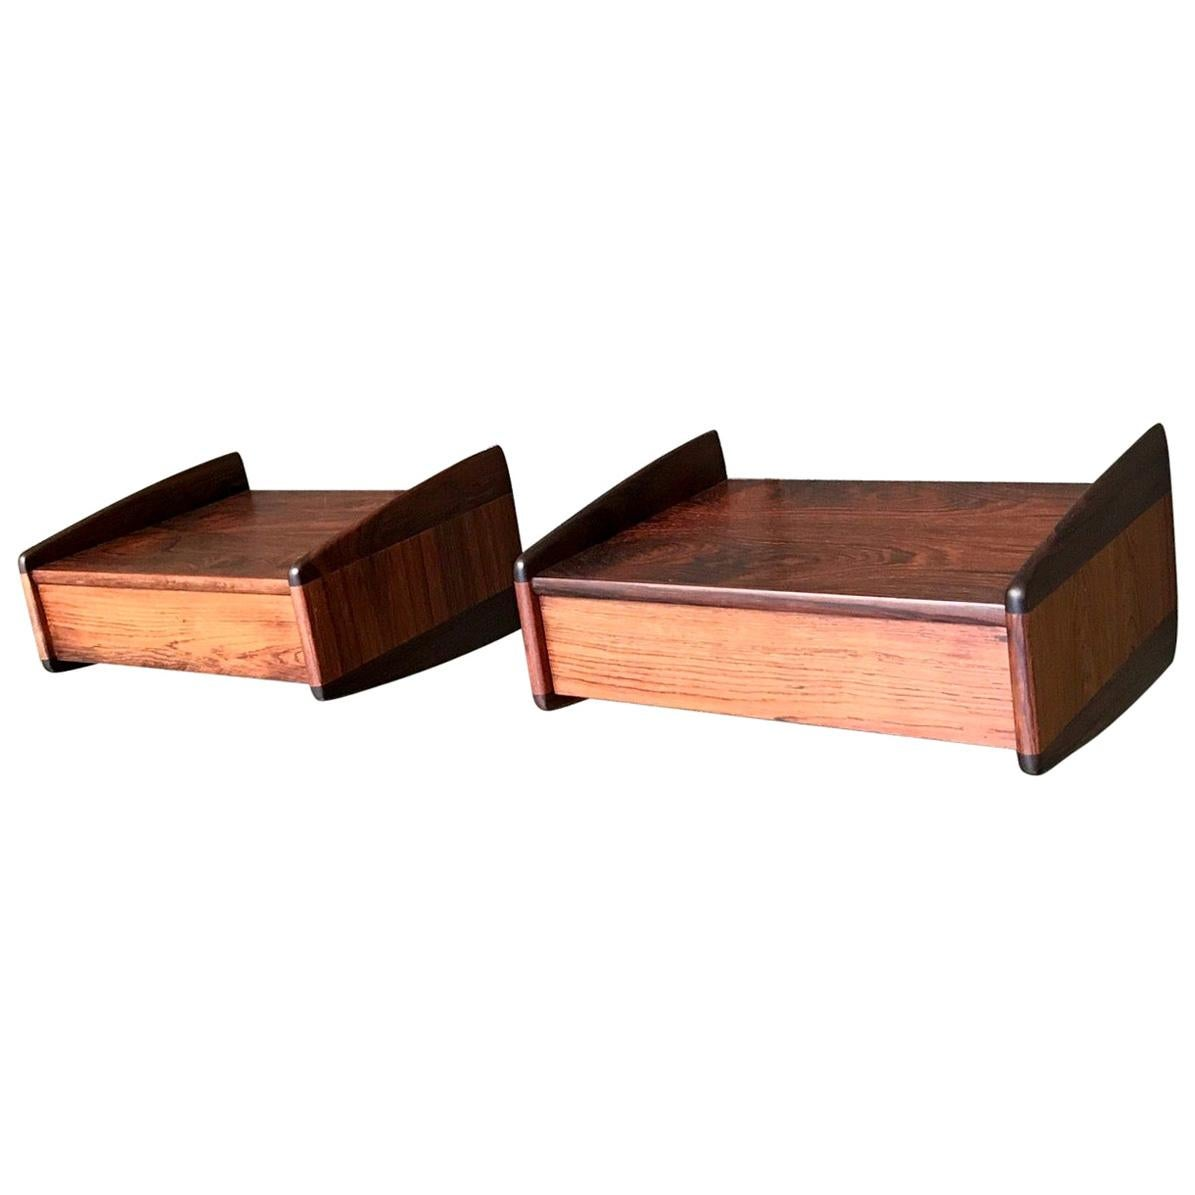 Danish Modern Floating Rosewood Nightstands by Melvin Mikkelsen, 1960s, Set of 2